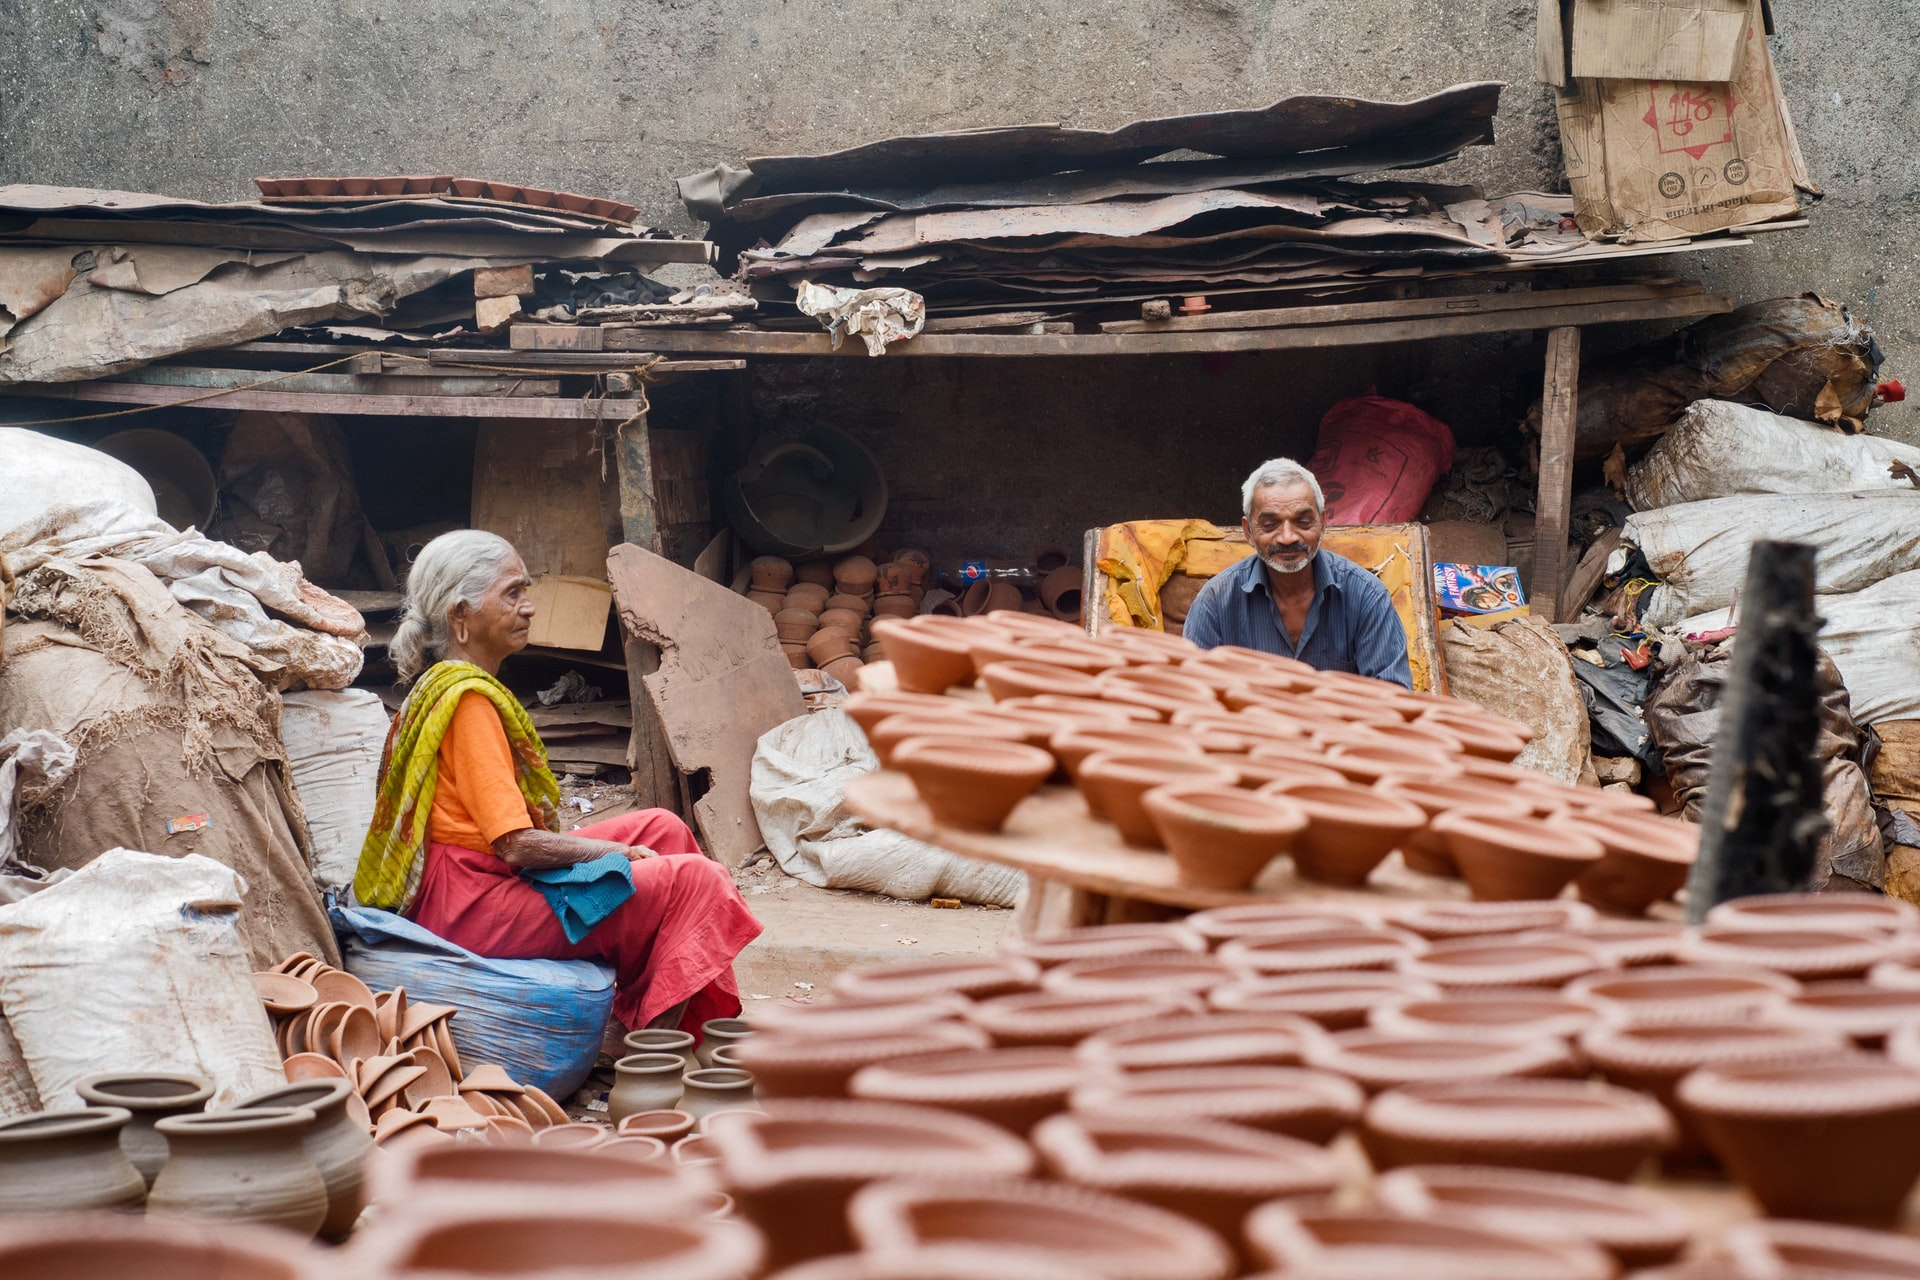 It's time for India to prepare for its ageing future - Unravel